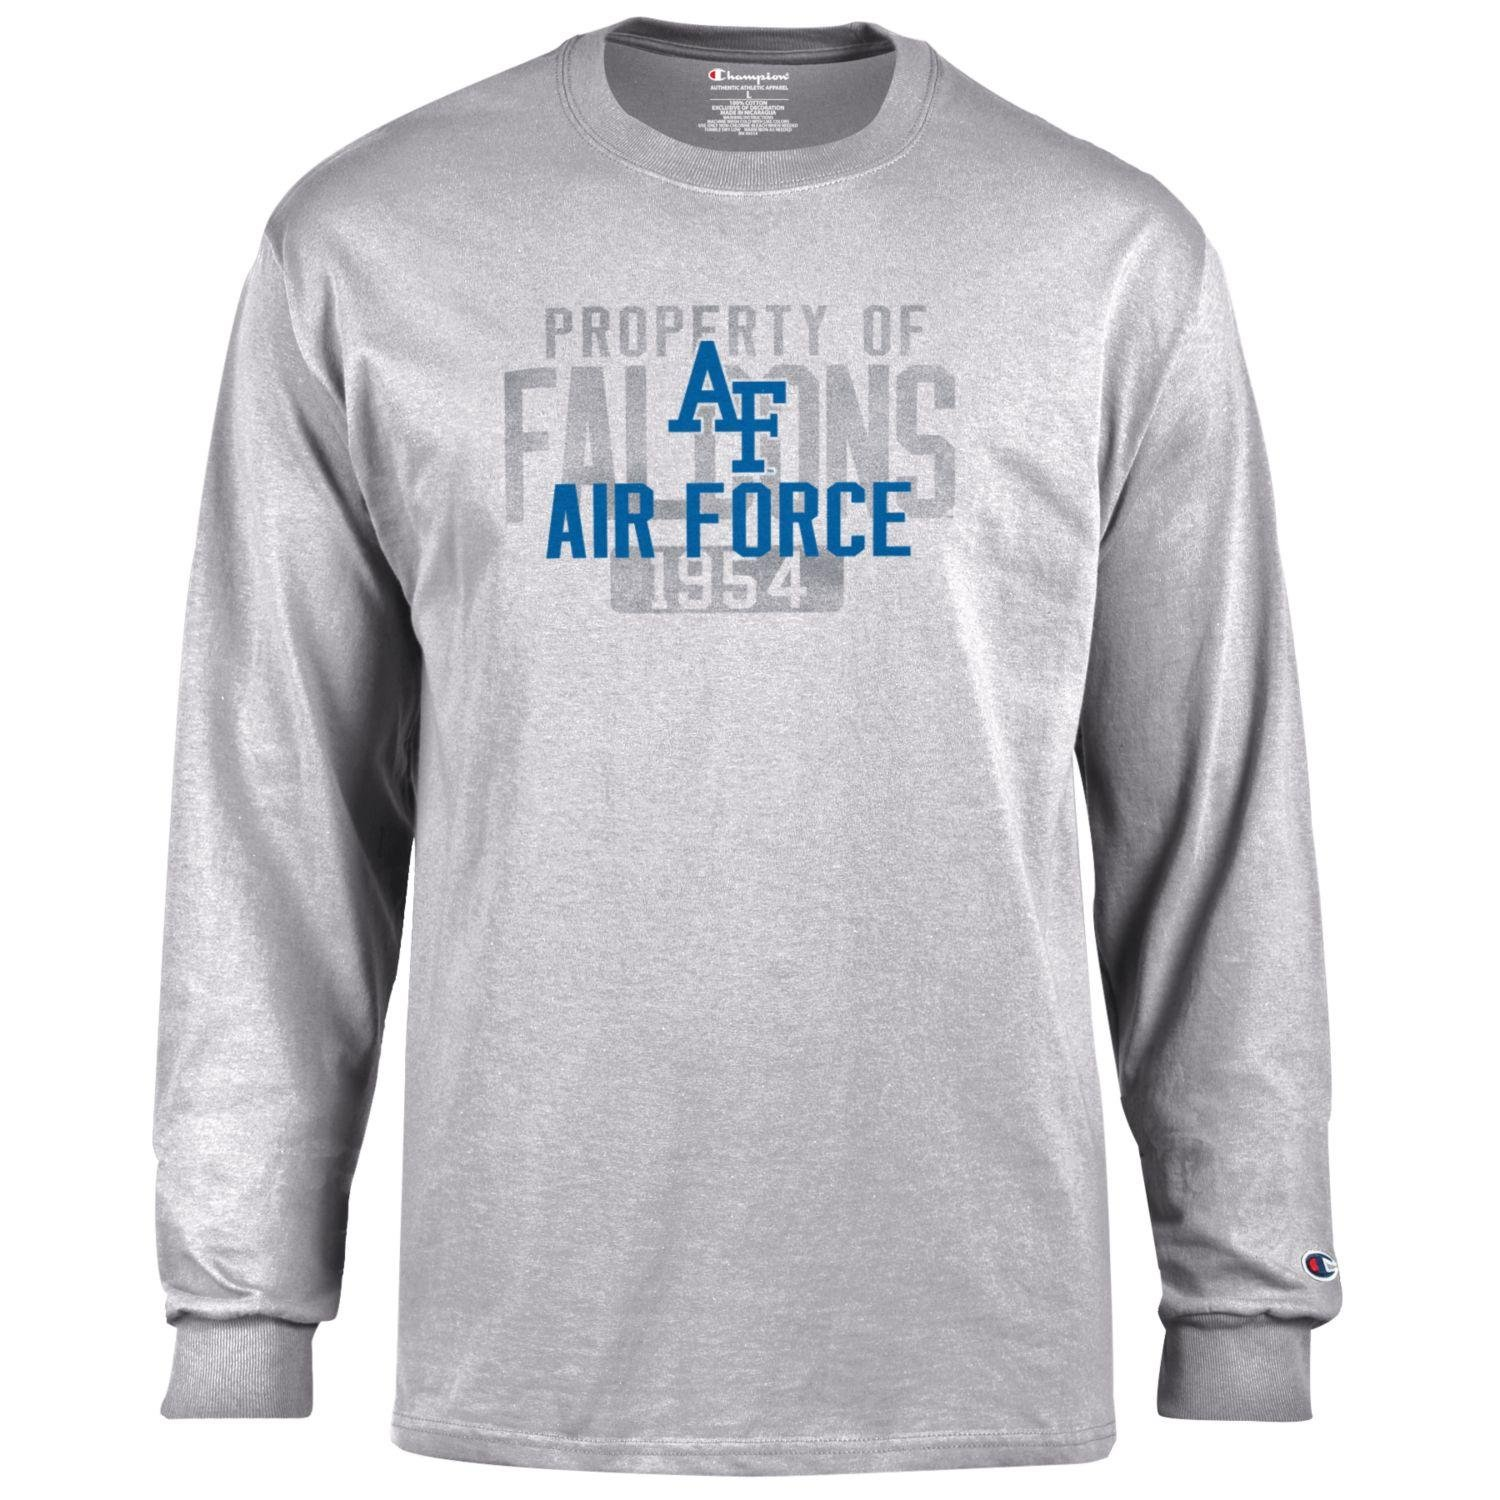 Champion NCAA Men's Long Sleeve Lightweight T-shirt Officially Licensed 100% Cotton Tagless Tee Air Force Falcons Small